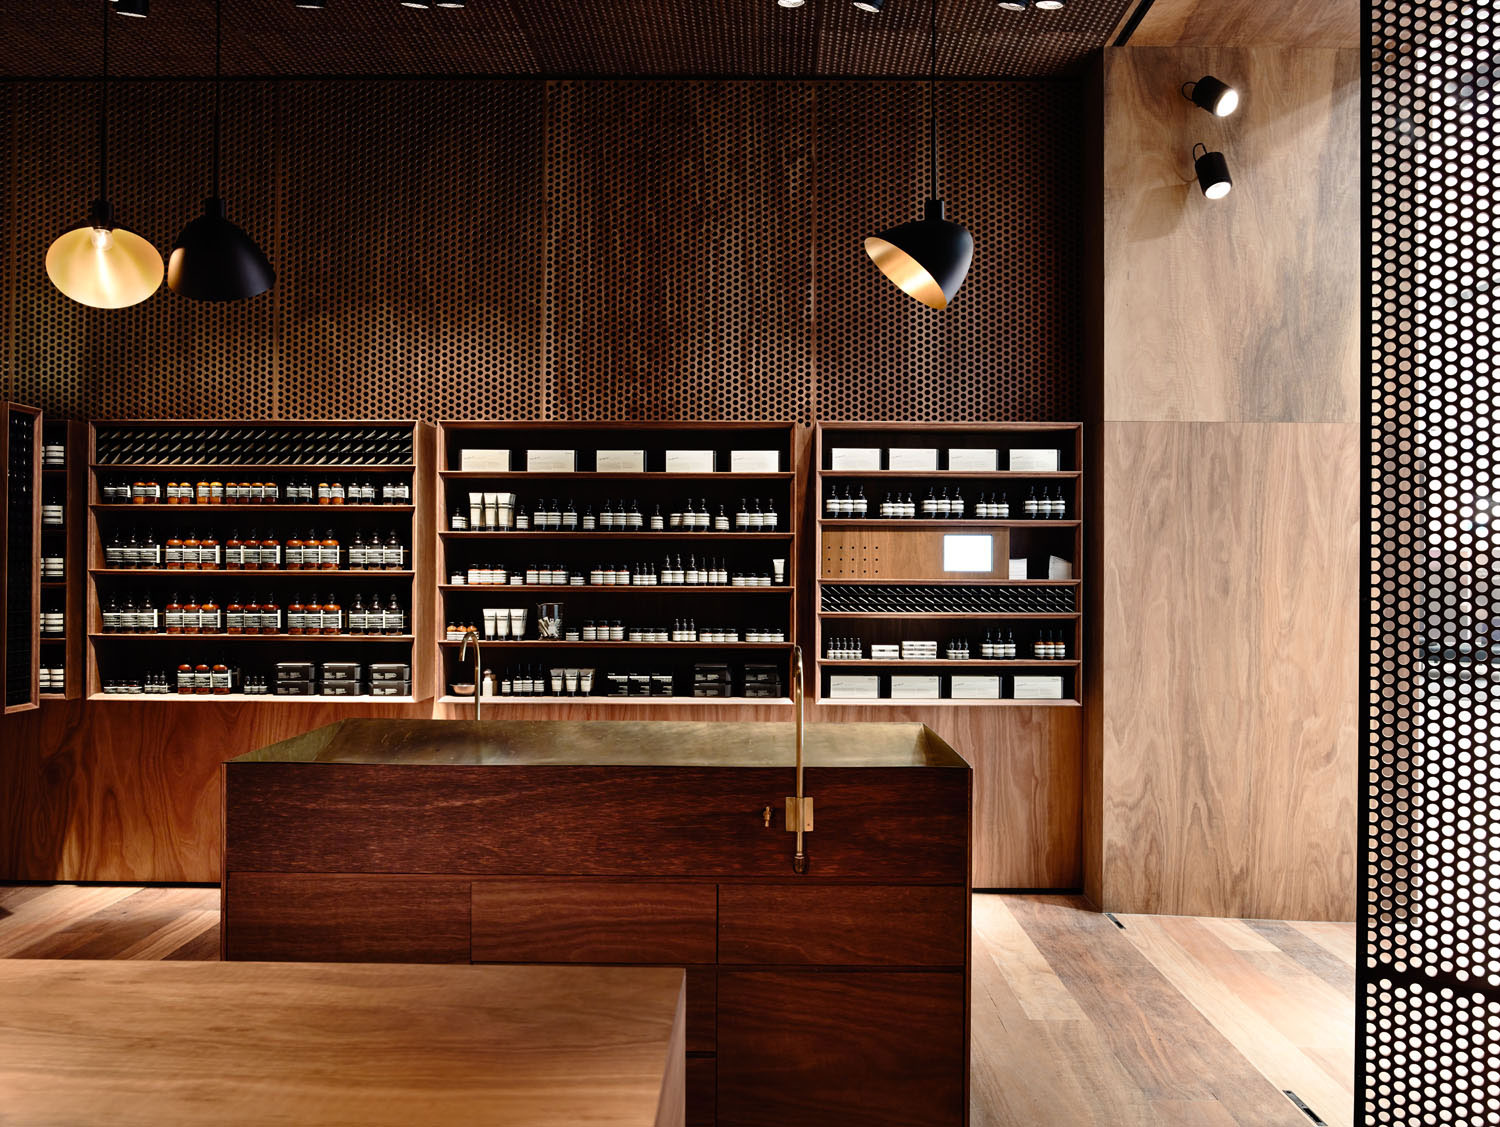 Aesop Emporium by Kerstin Thompson Architects. Photo by Derek Swalwell | Yellowtrace